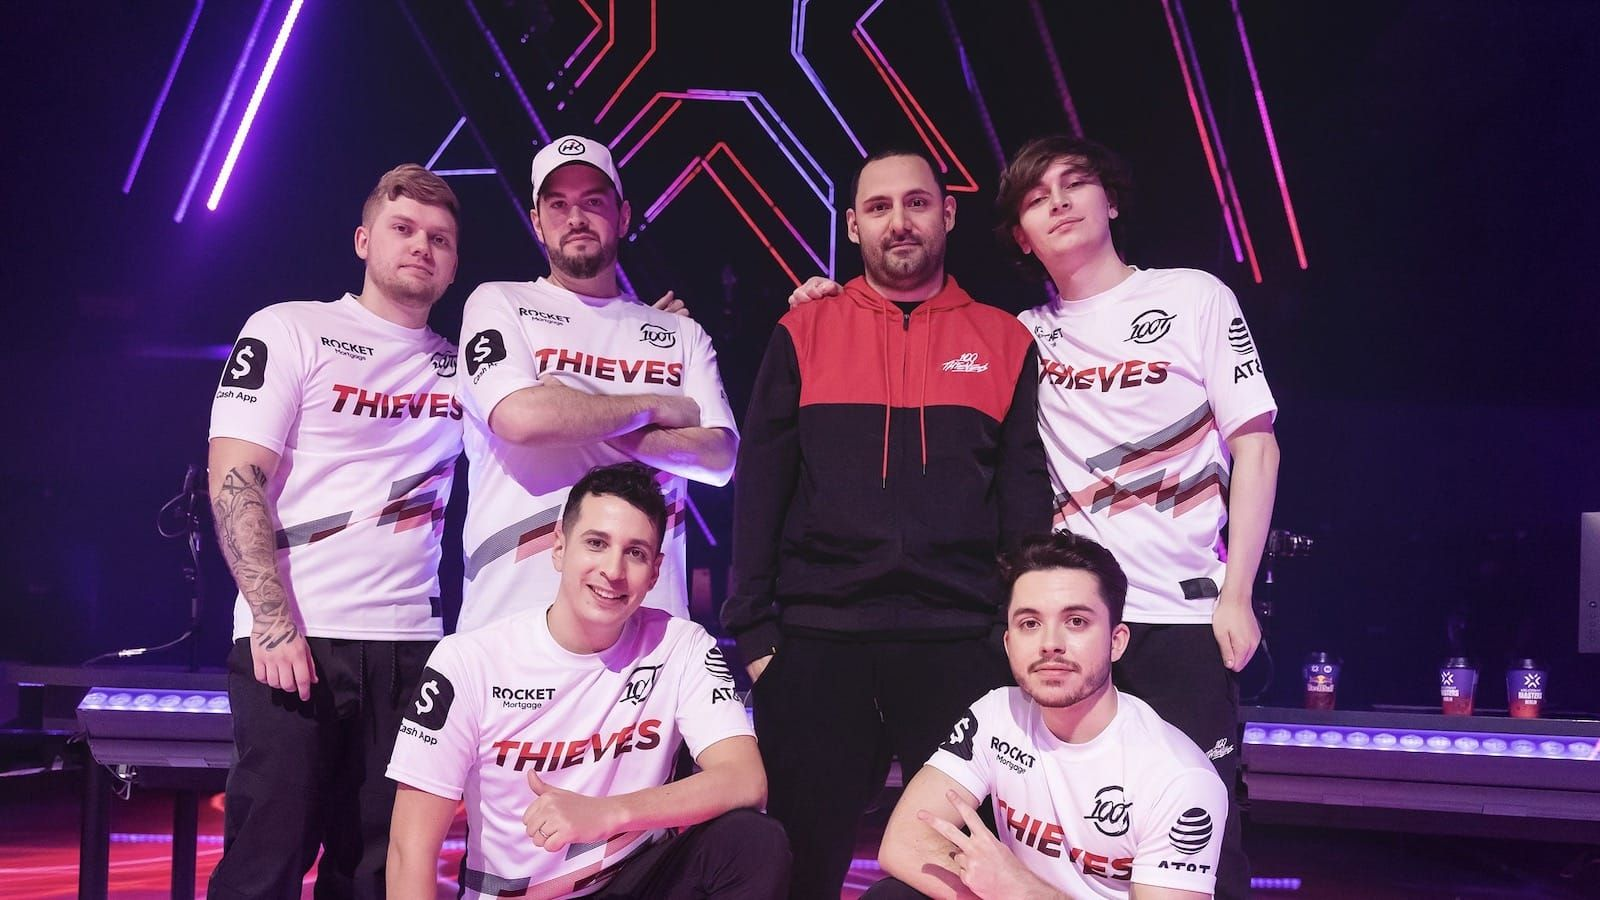 100 Thieves on stage at Masters Berlin Valorant tournament